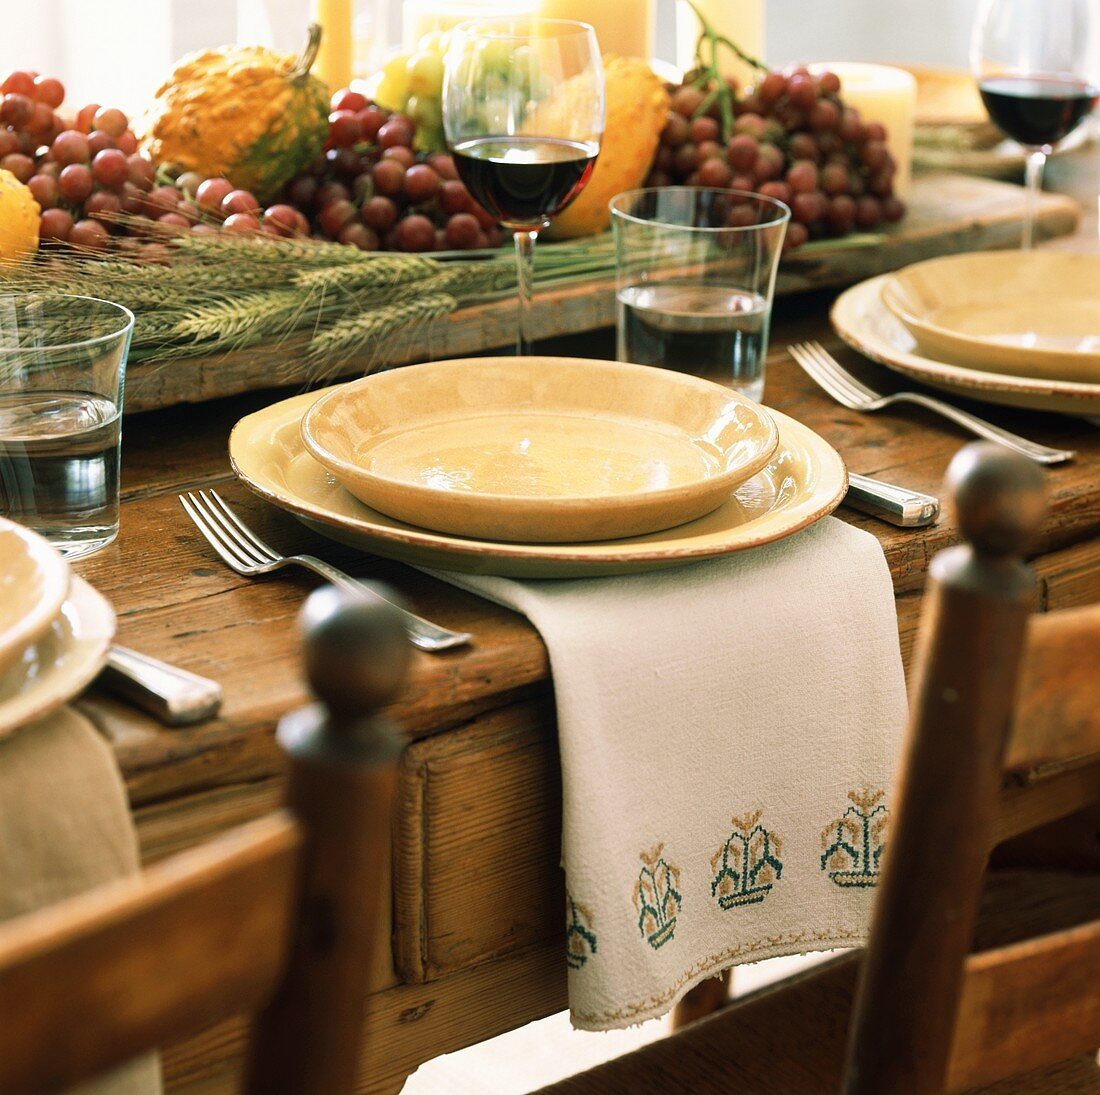 Place-setting on table laid for Thanksgiving